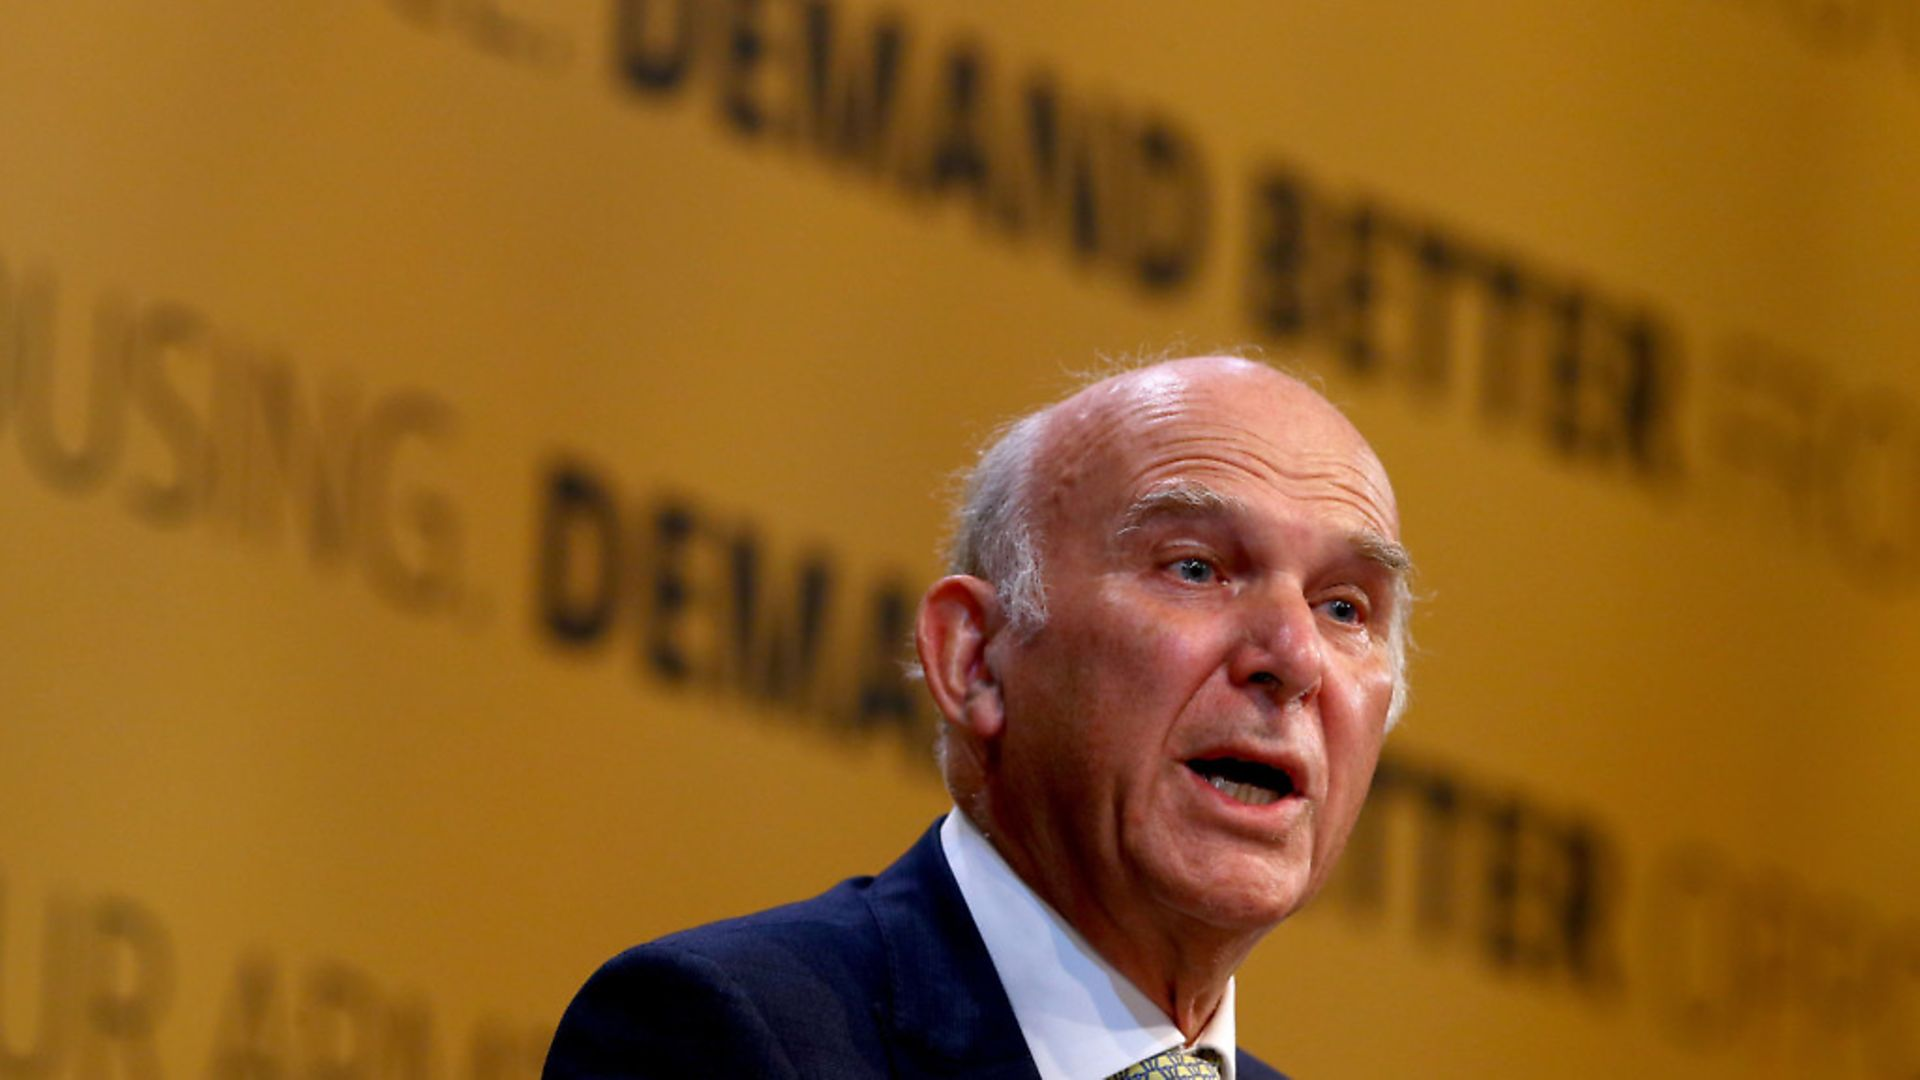 Liberal Democrats Leader Sir Vince Cable delivers his speech at the Liberal Democrats Autumn Conference at the Brighton Centre in Brighton Photo: PA / Gareth Fuller - Credit: PA Wire/PA Images